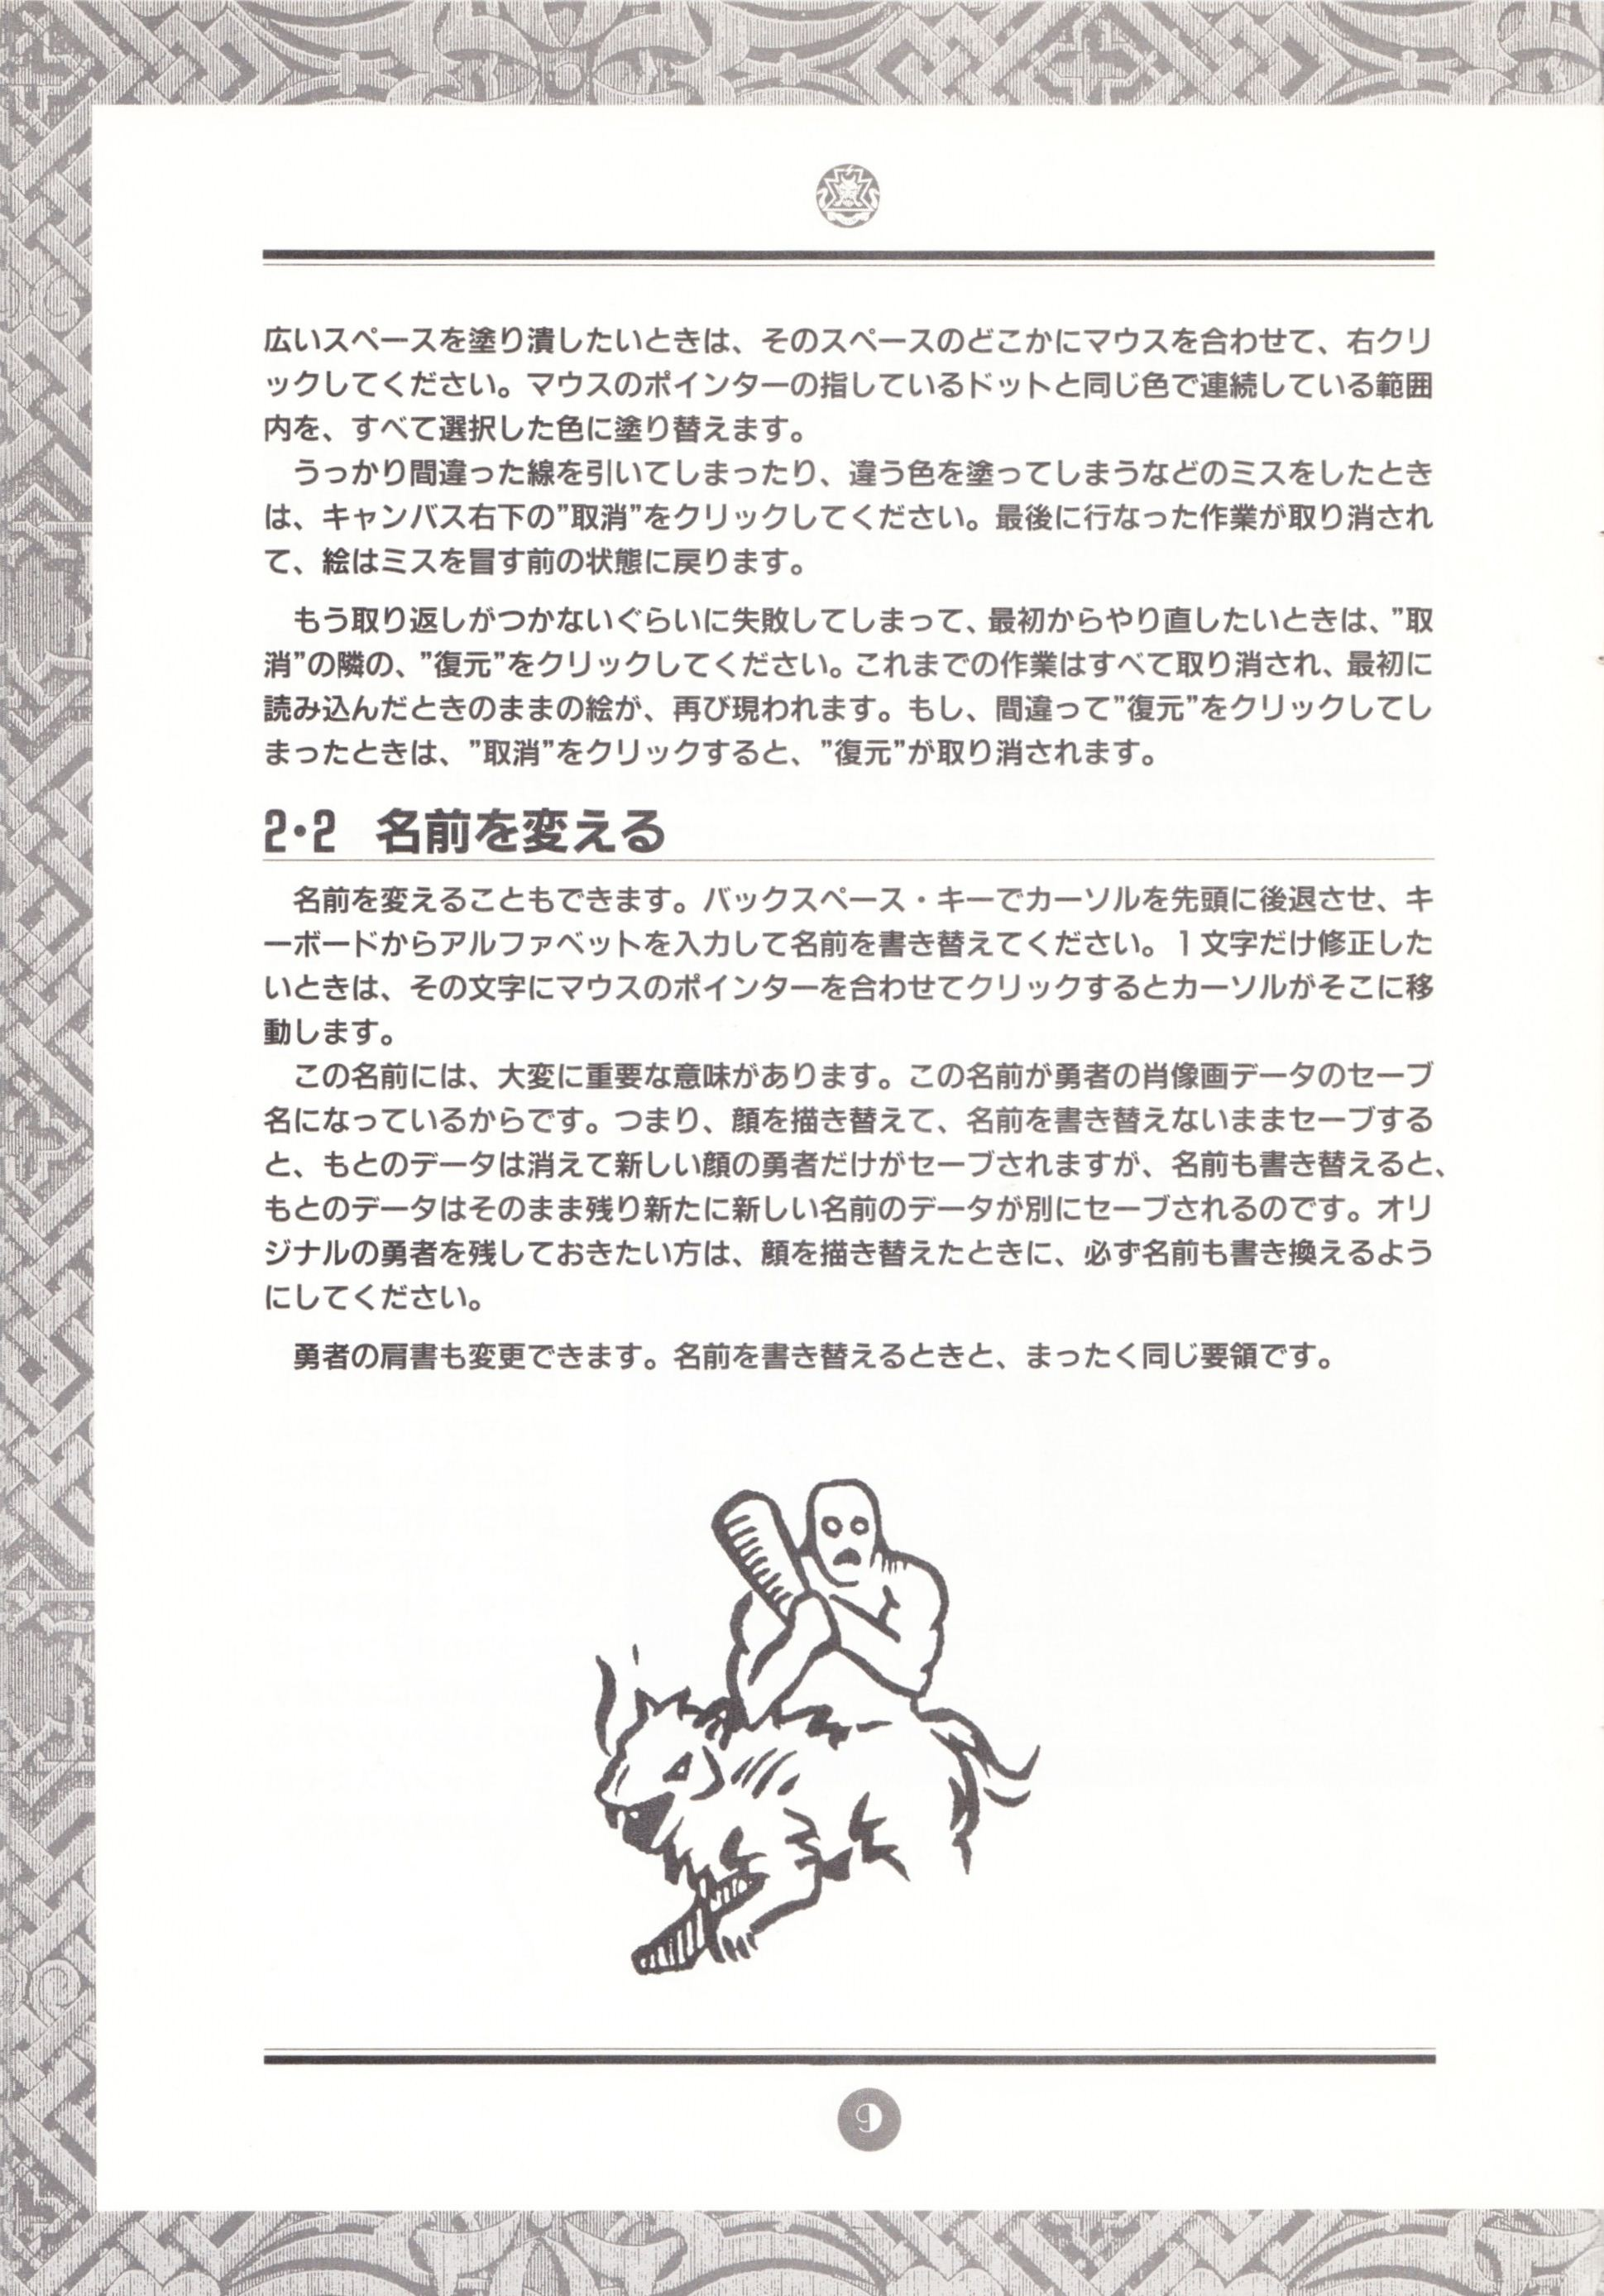 Game - Chaos Strikes Back - JP - FM Towns - An Operation Manual - Page 012 - Scan